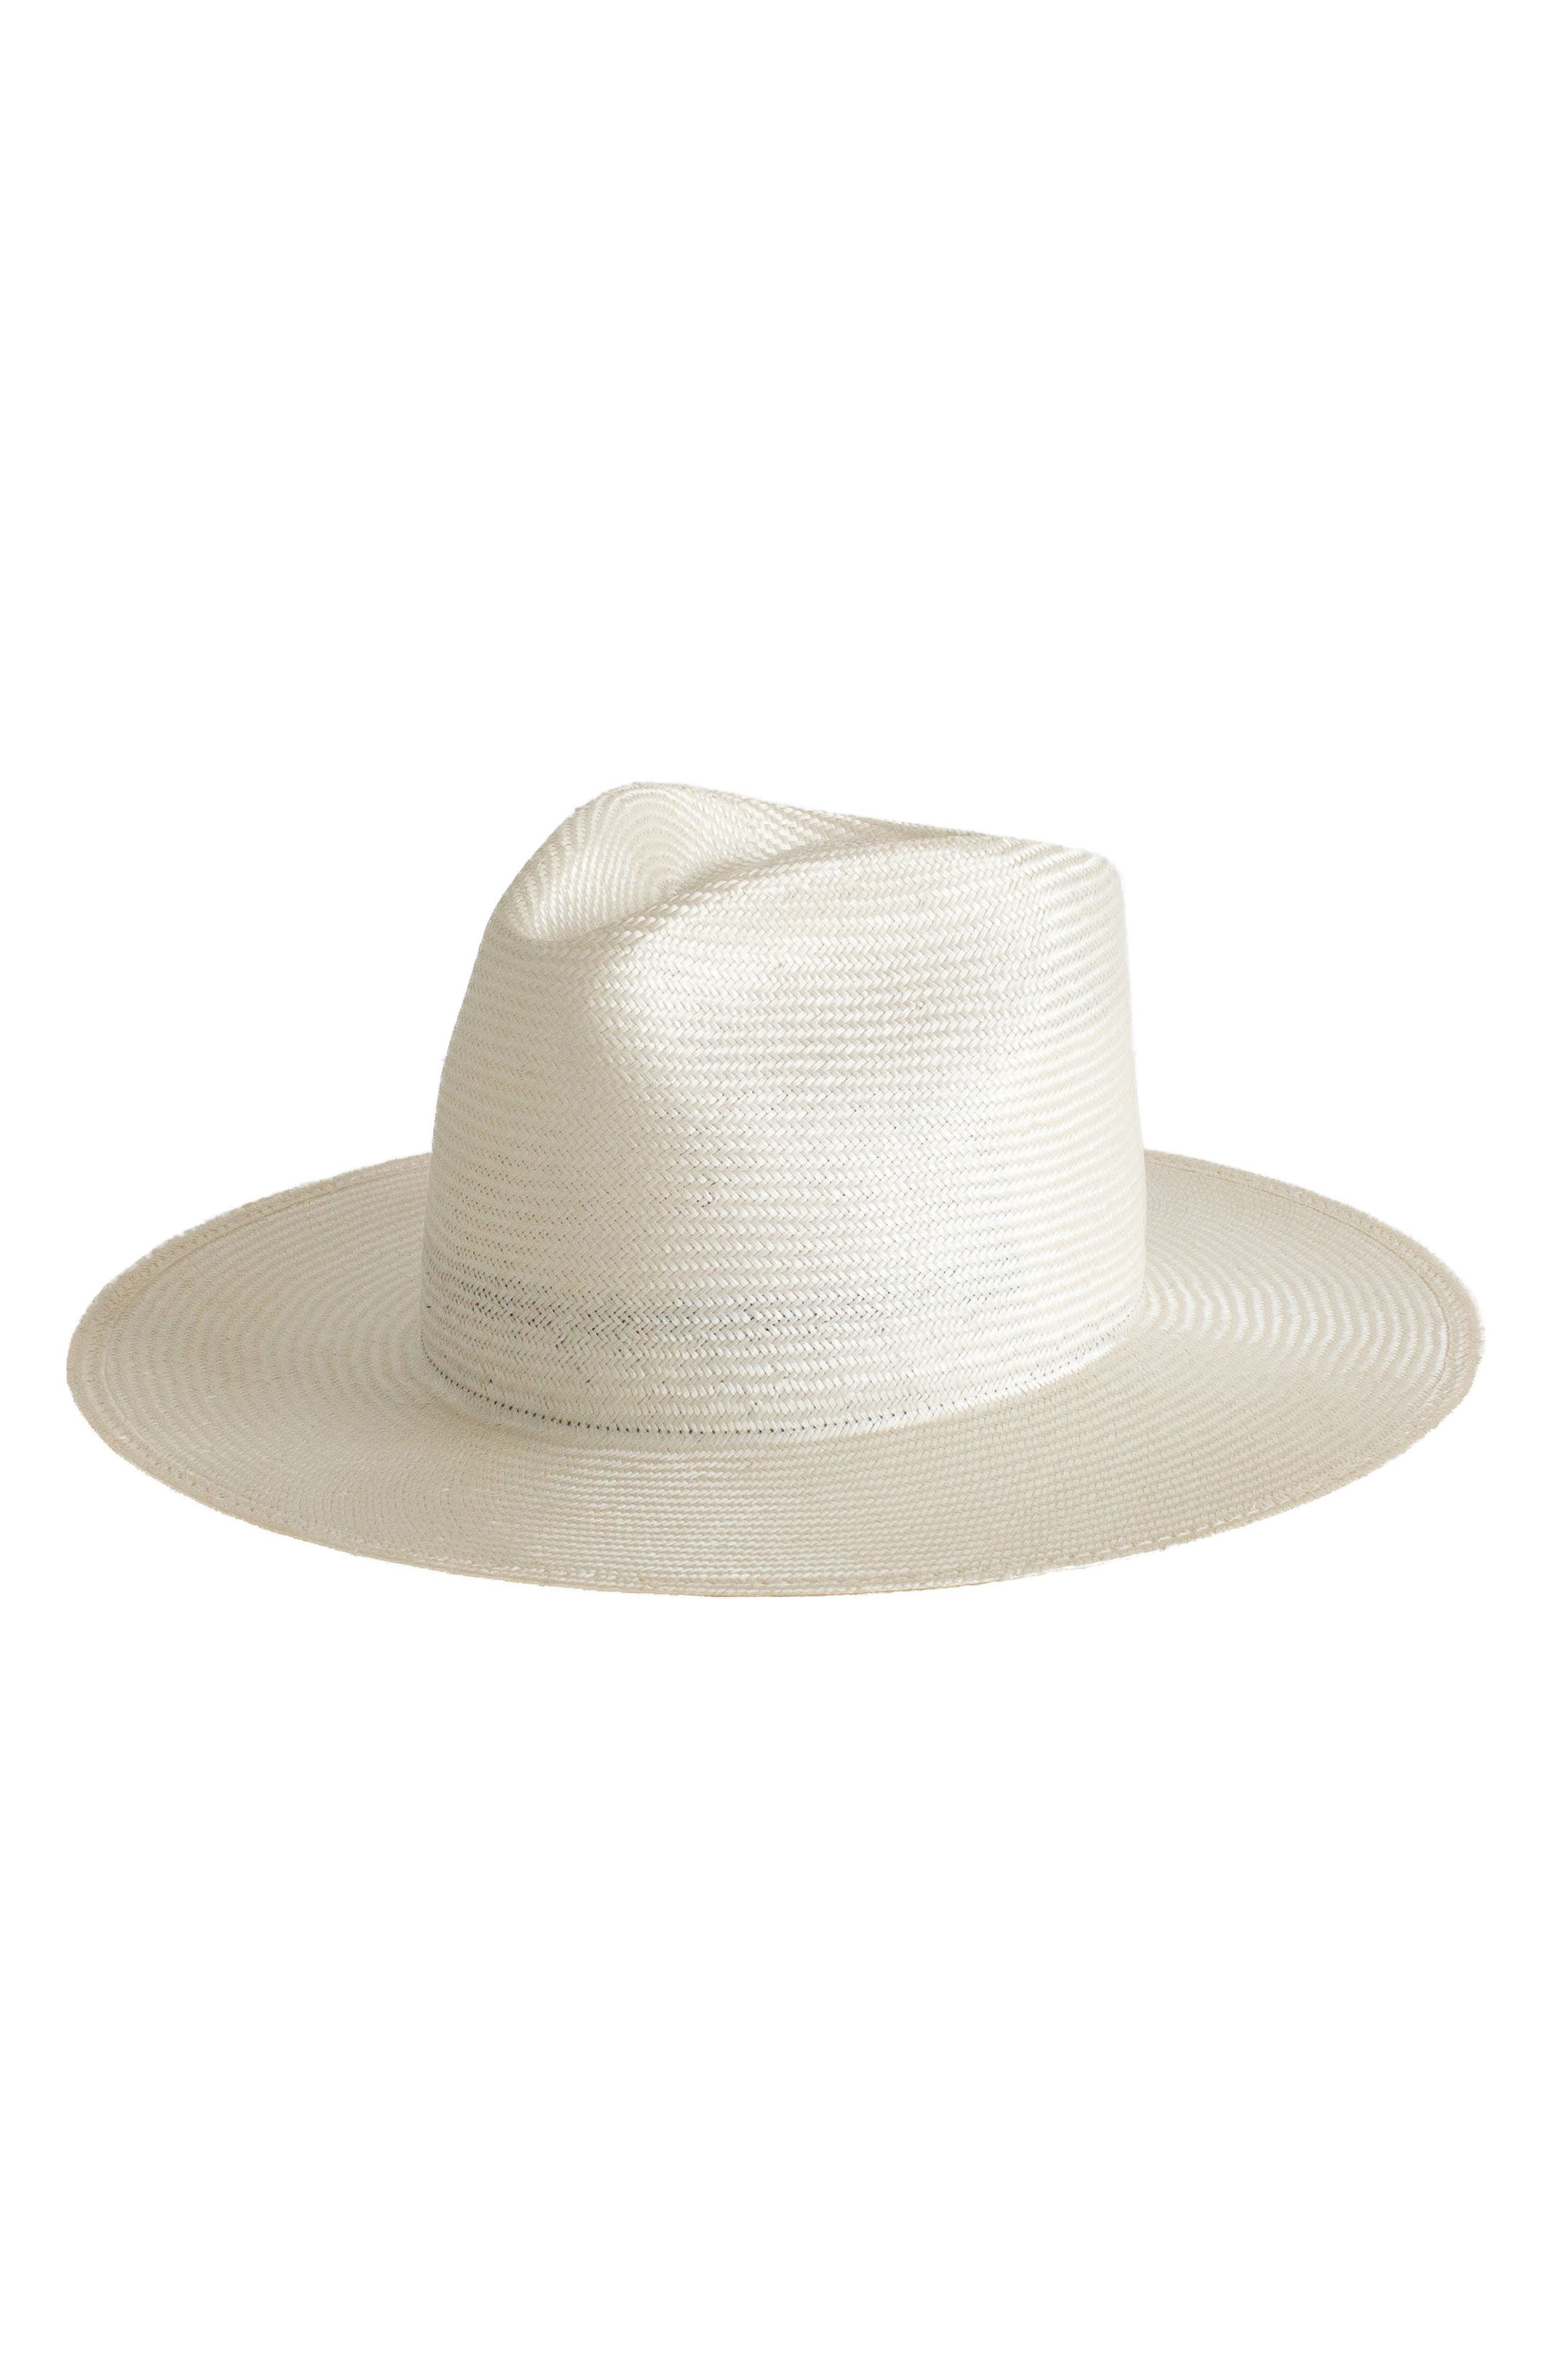 Alexander Straw Hat,                         Main,                         color,